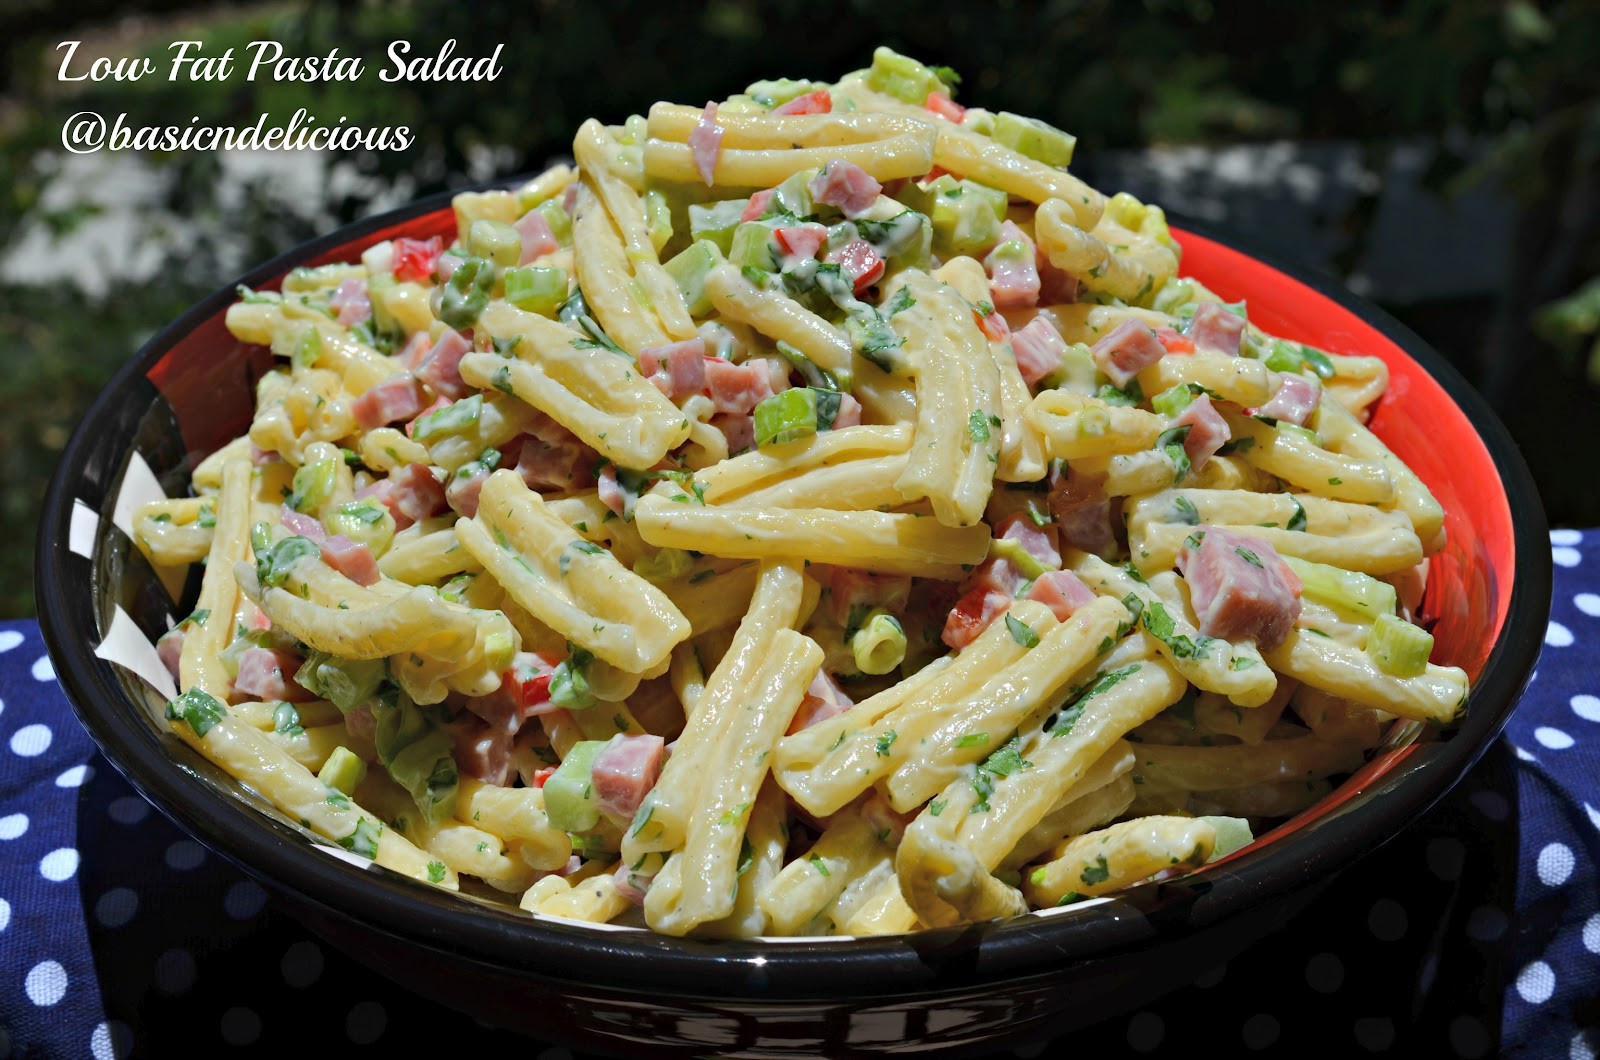 Low Fat Pasta Salad  BASIC N DELICIOUS LOW FAT PASTA SALAD 4th OF JULY